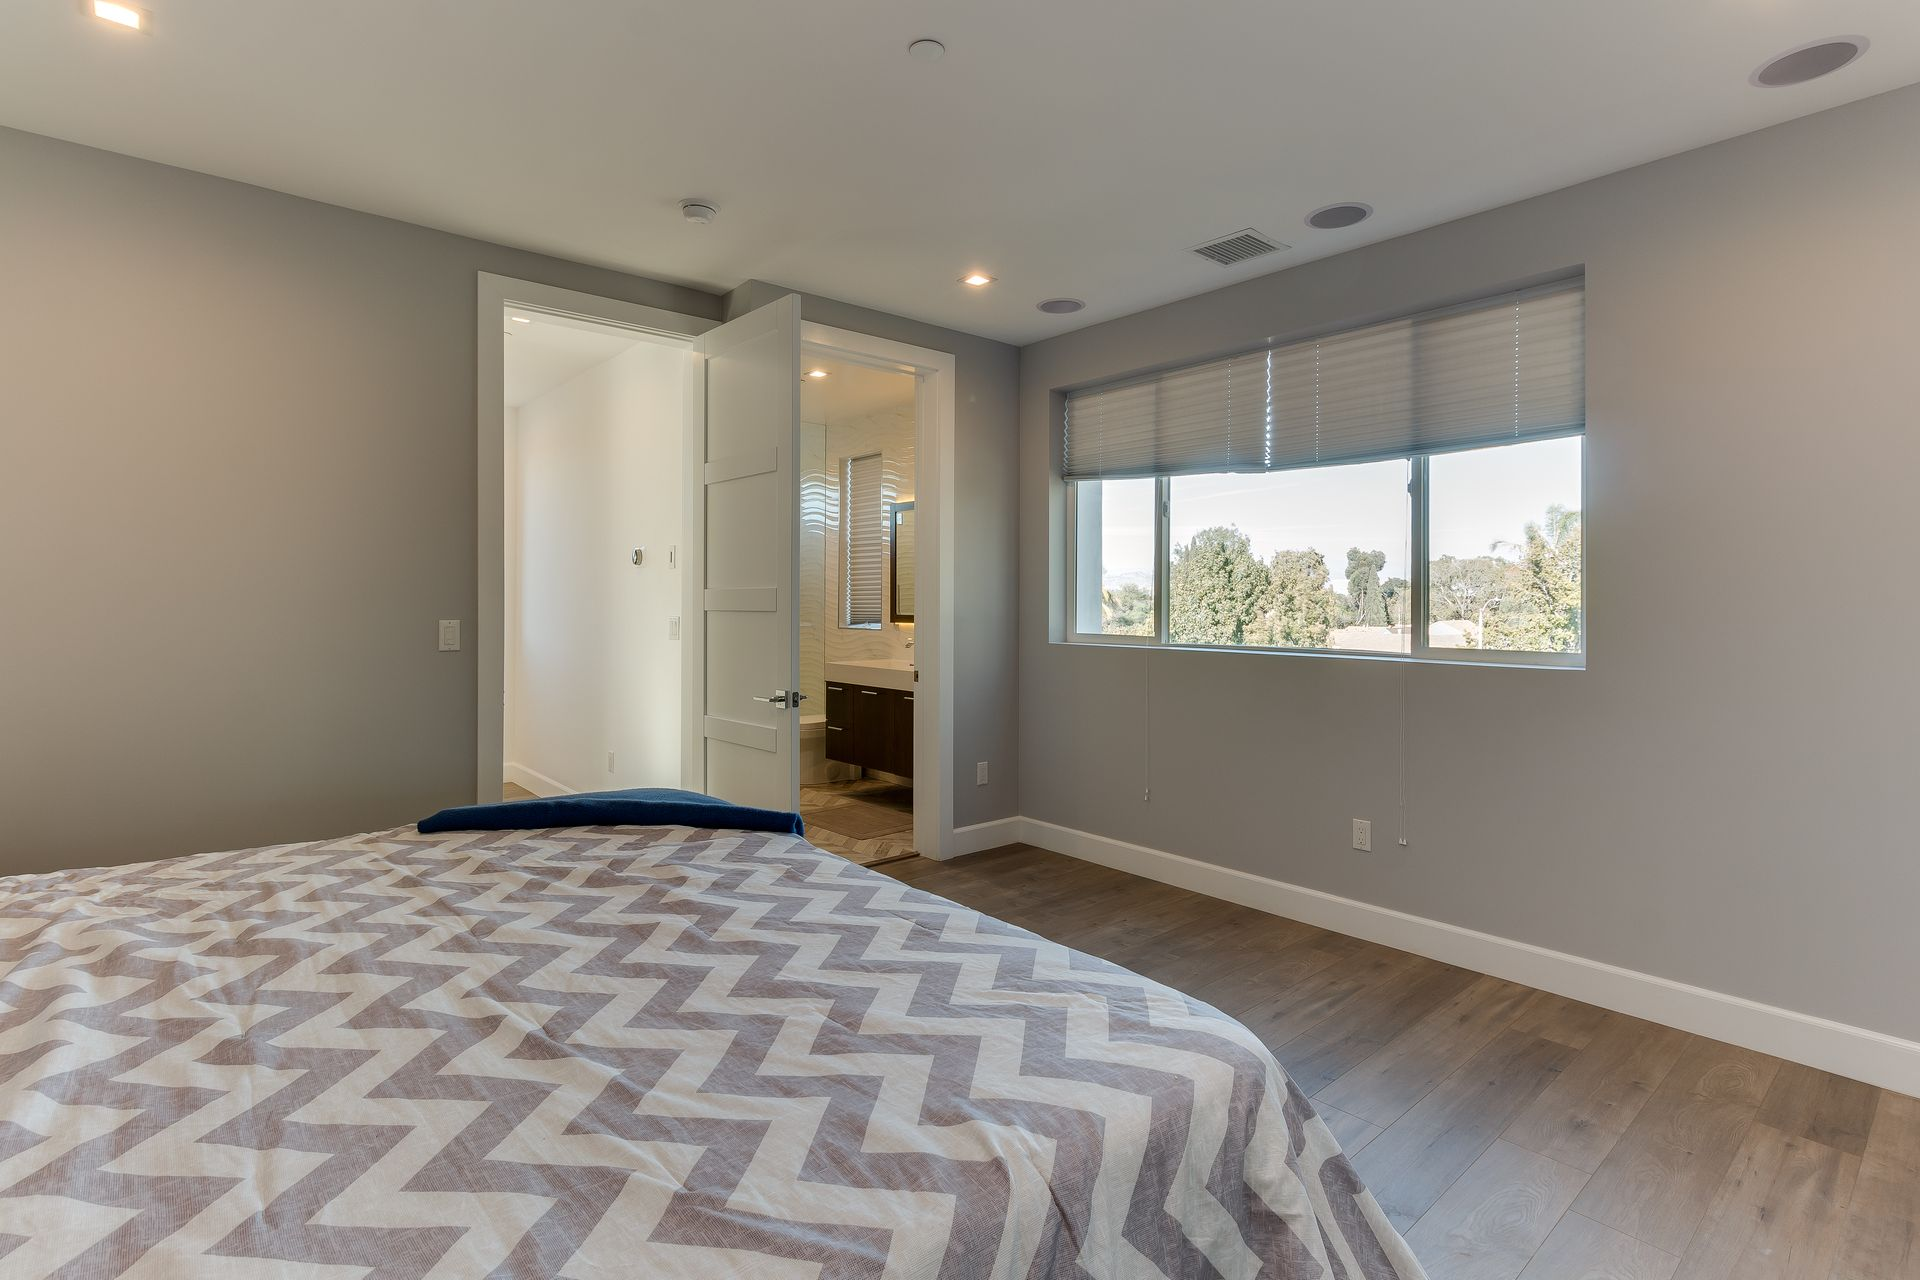 3136 ivy st,los angeles,los angeles,California,United States 90035,House,3136 ivy st,1039